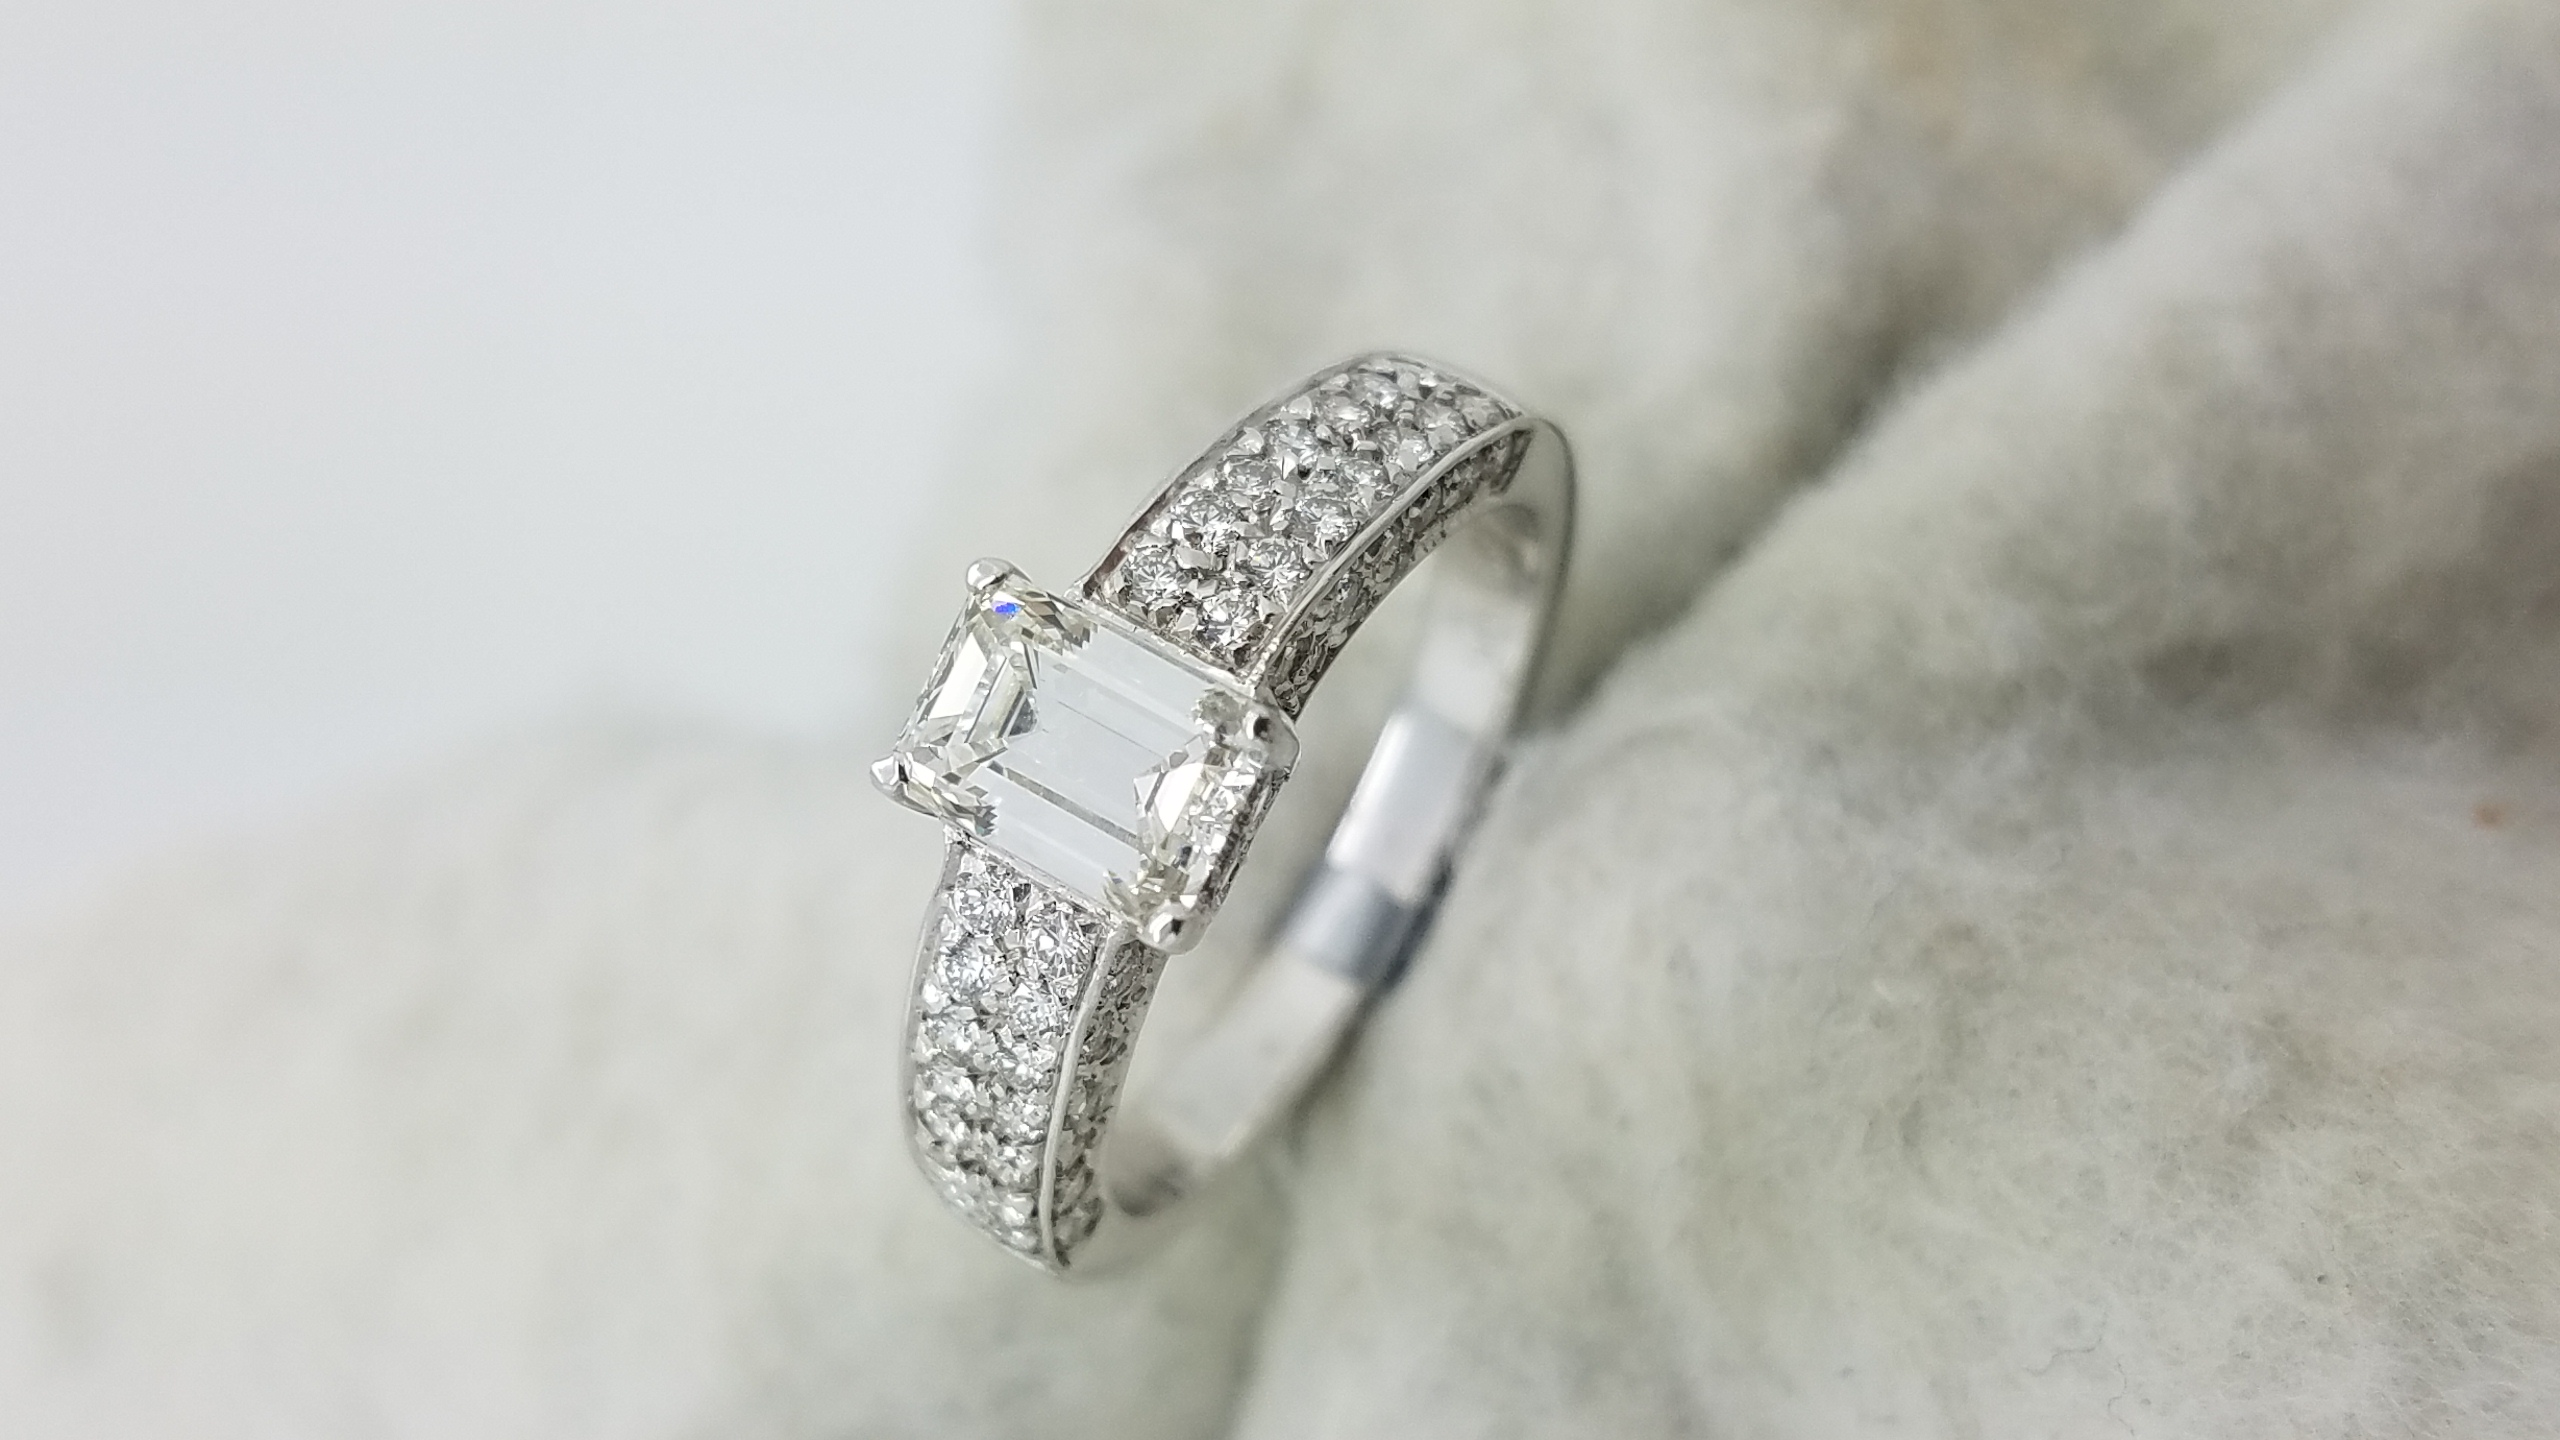 18K	White Gold	half pave	0.95+1.25	ct.	EM+R	Cut	Diamond	I	VS1	4-prong and pave	Solitaire with Accents	Engagement-Ring